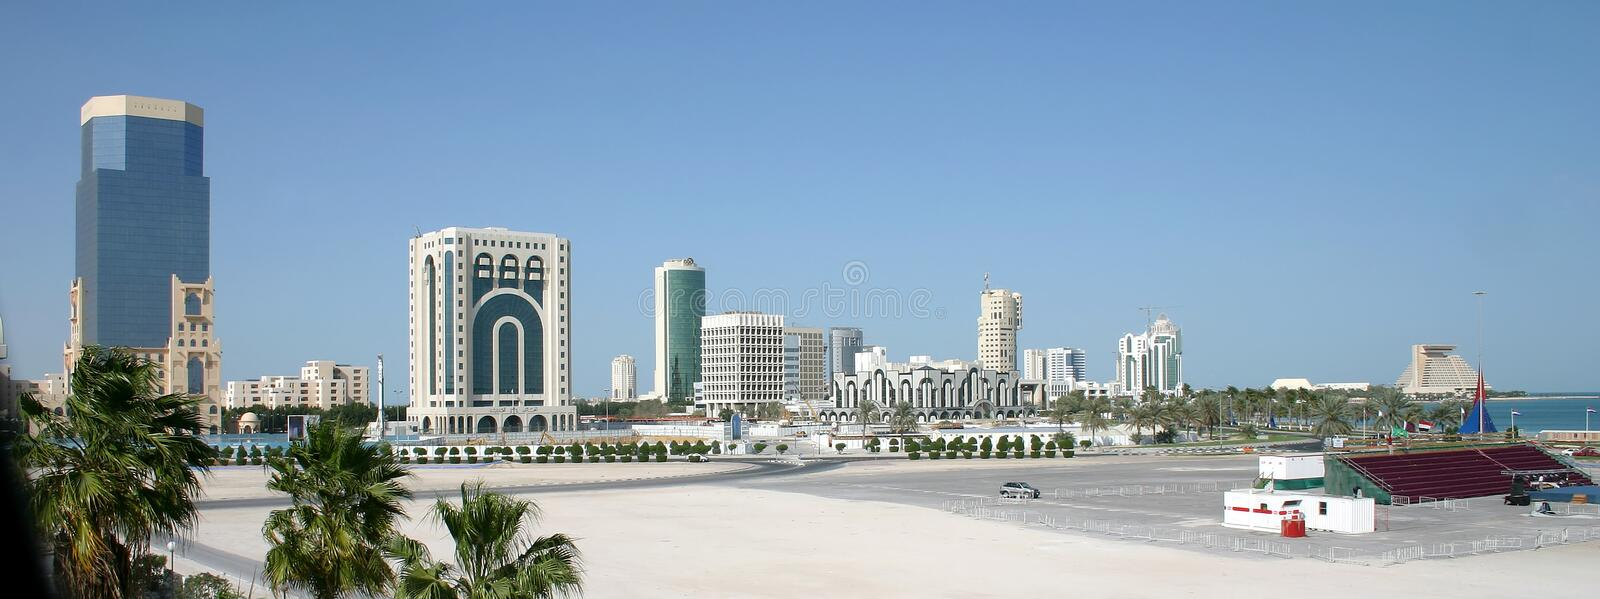 Doha city skyline stock photography